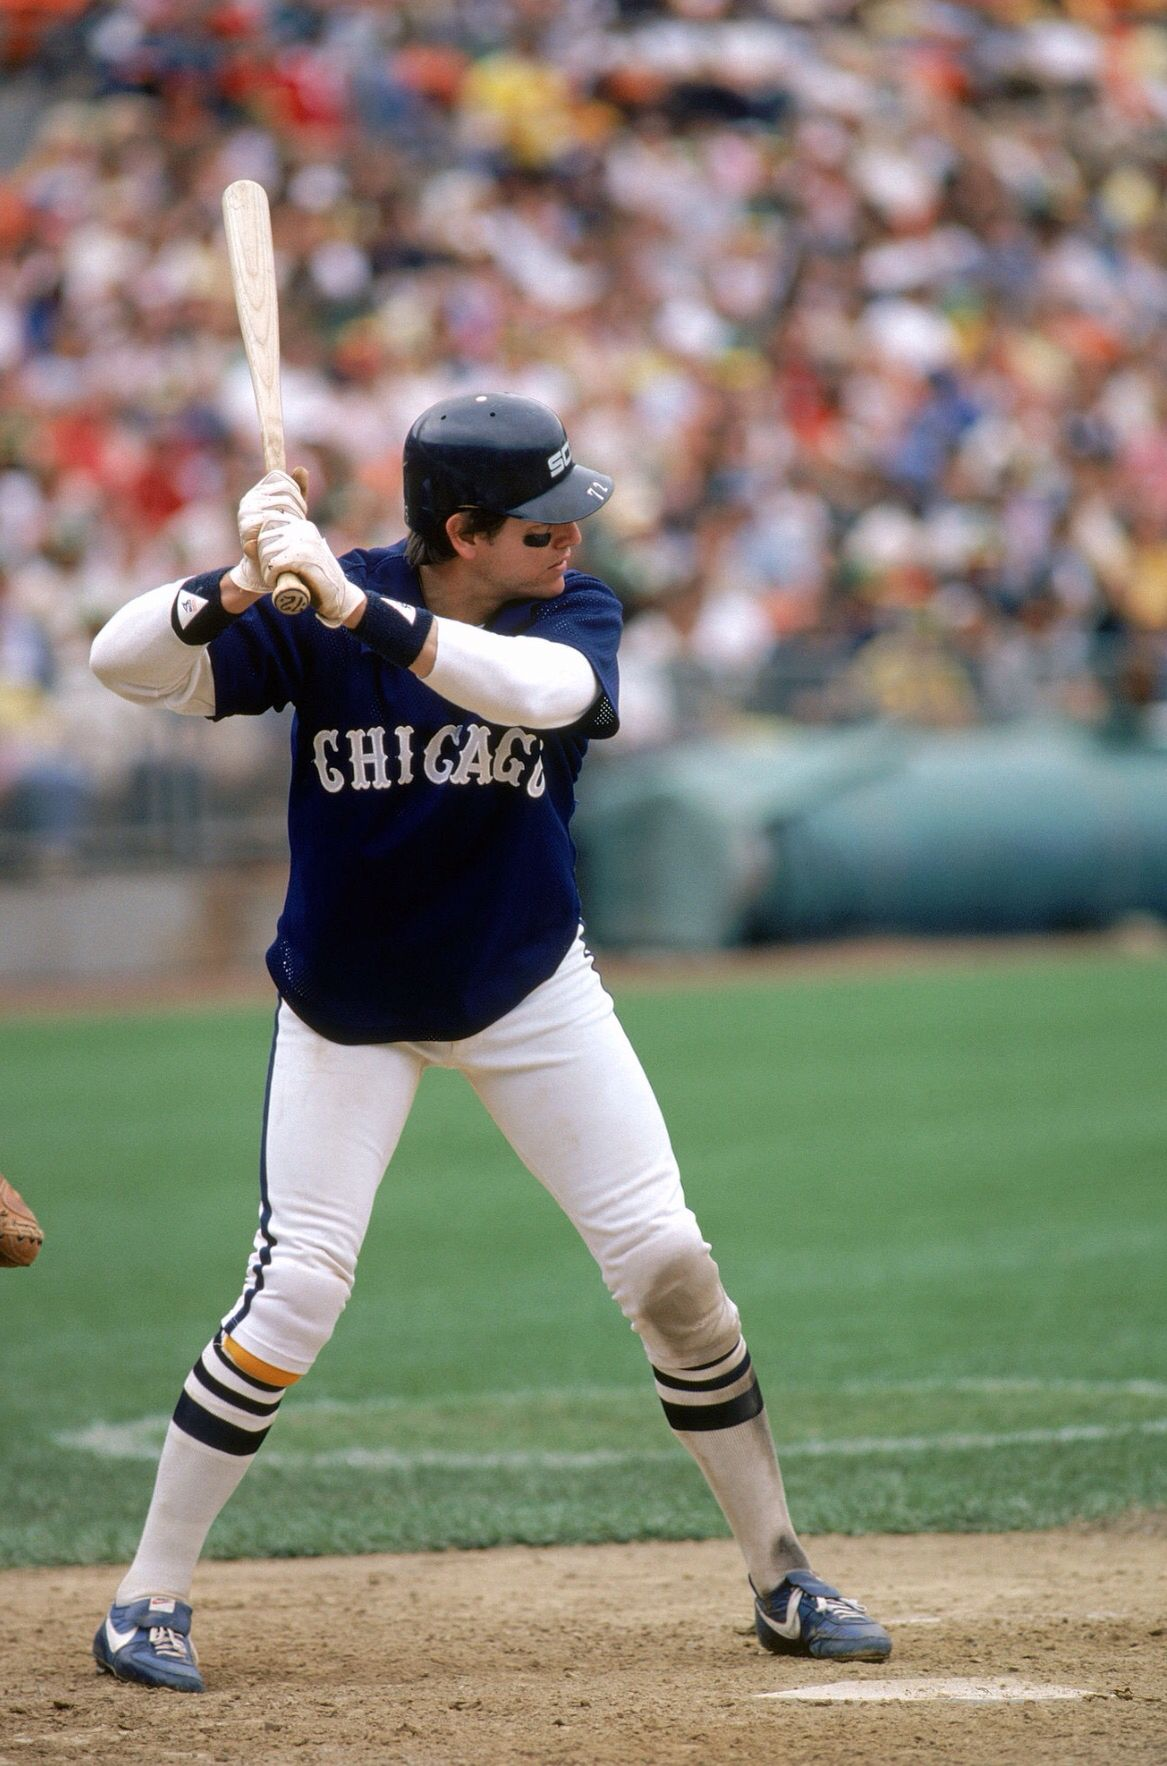 Carlton Fisk this picture breaks my heart in this uniform